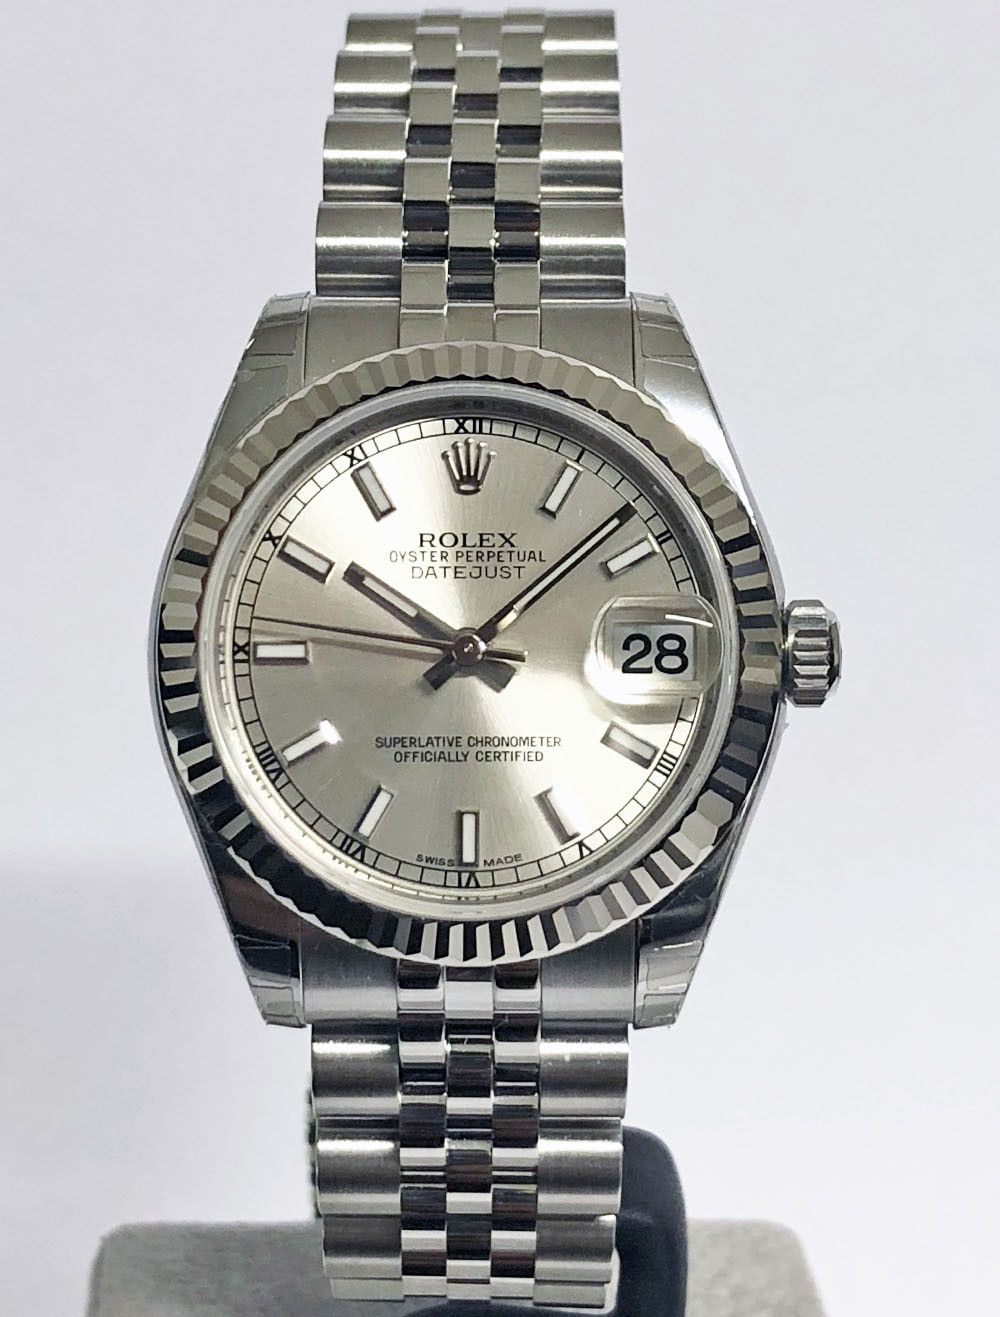 Rolex Oyster Perpetual Datejust 31 Mm 178274 2 Luxellence The